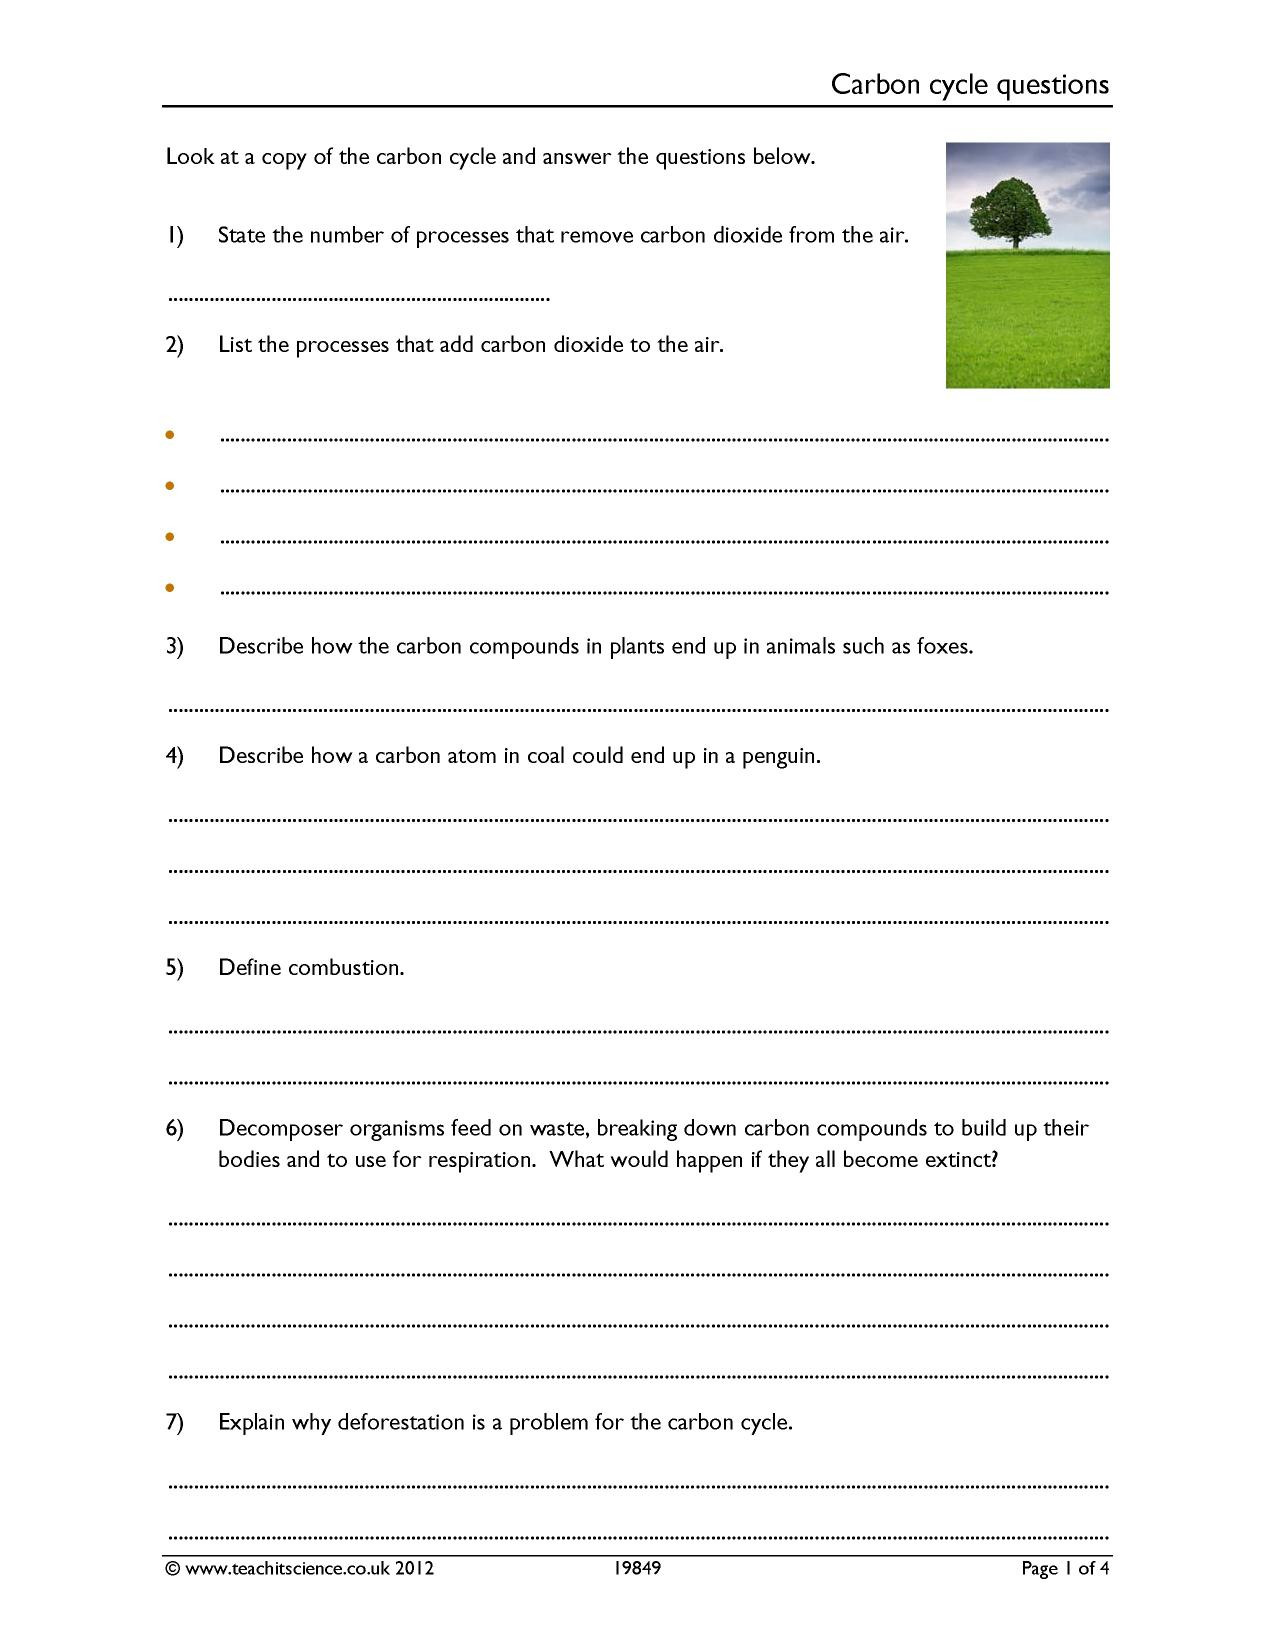 Geography Worksheets Middle School Pdf Carbon Cycle Questions Worksheet [pdf] Teachit Science